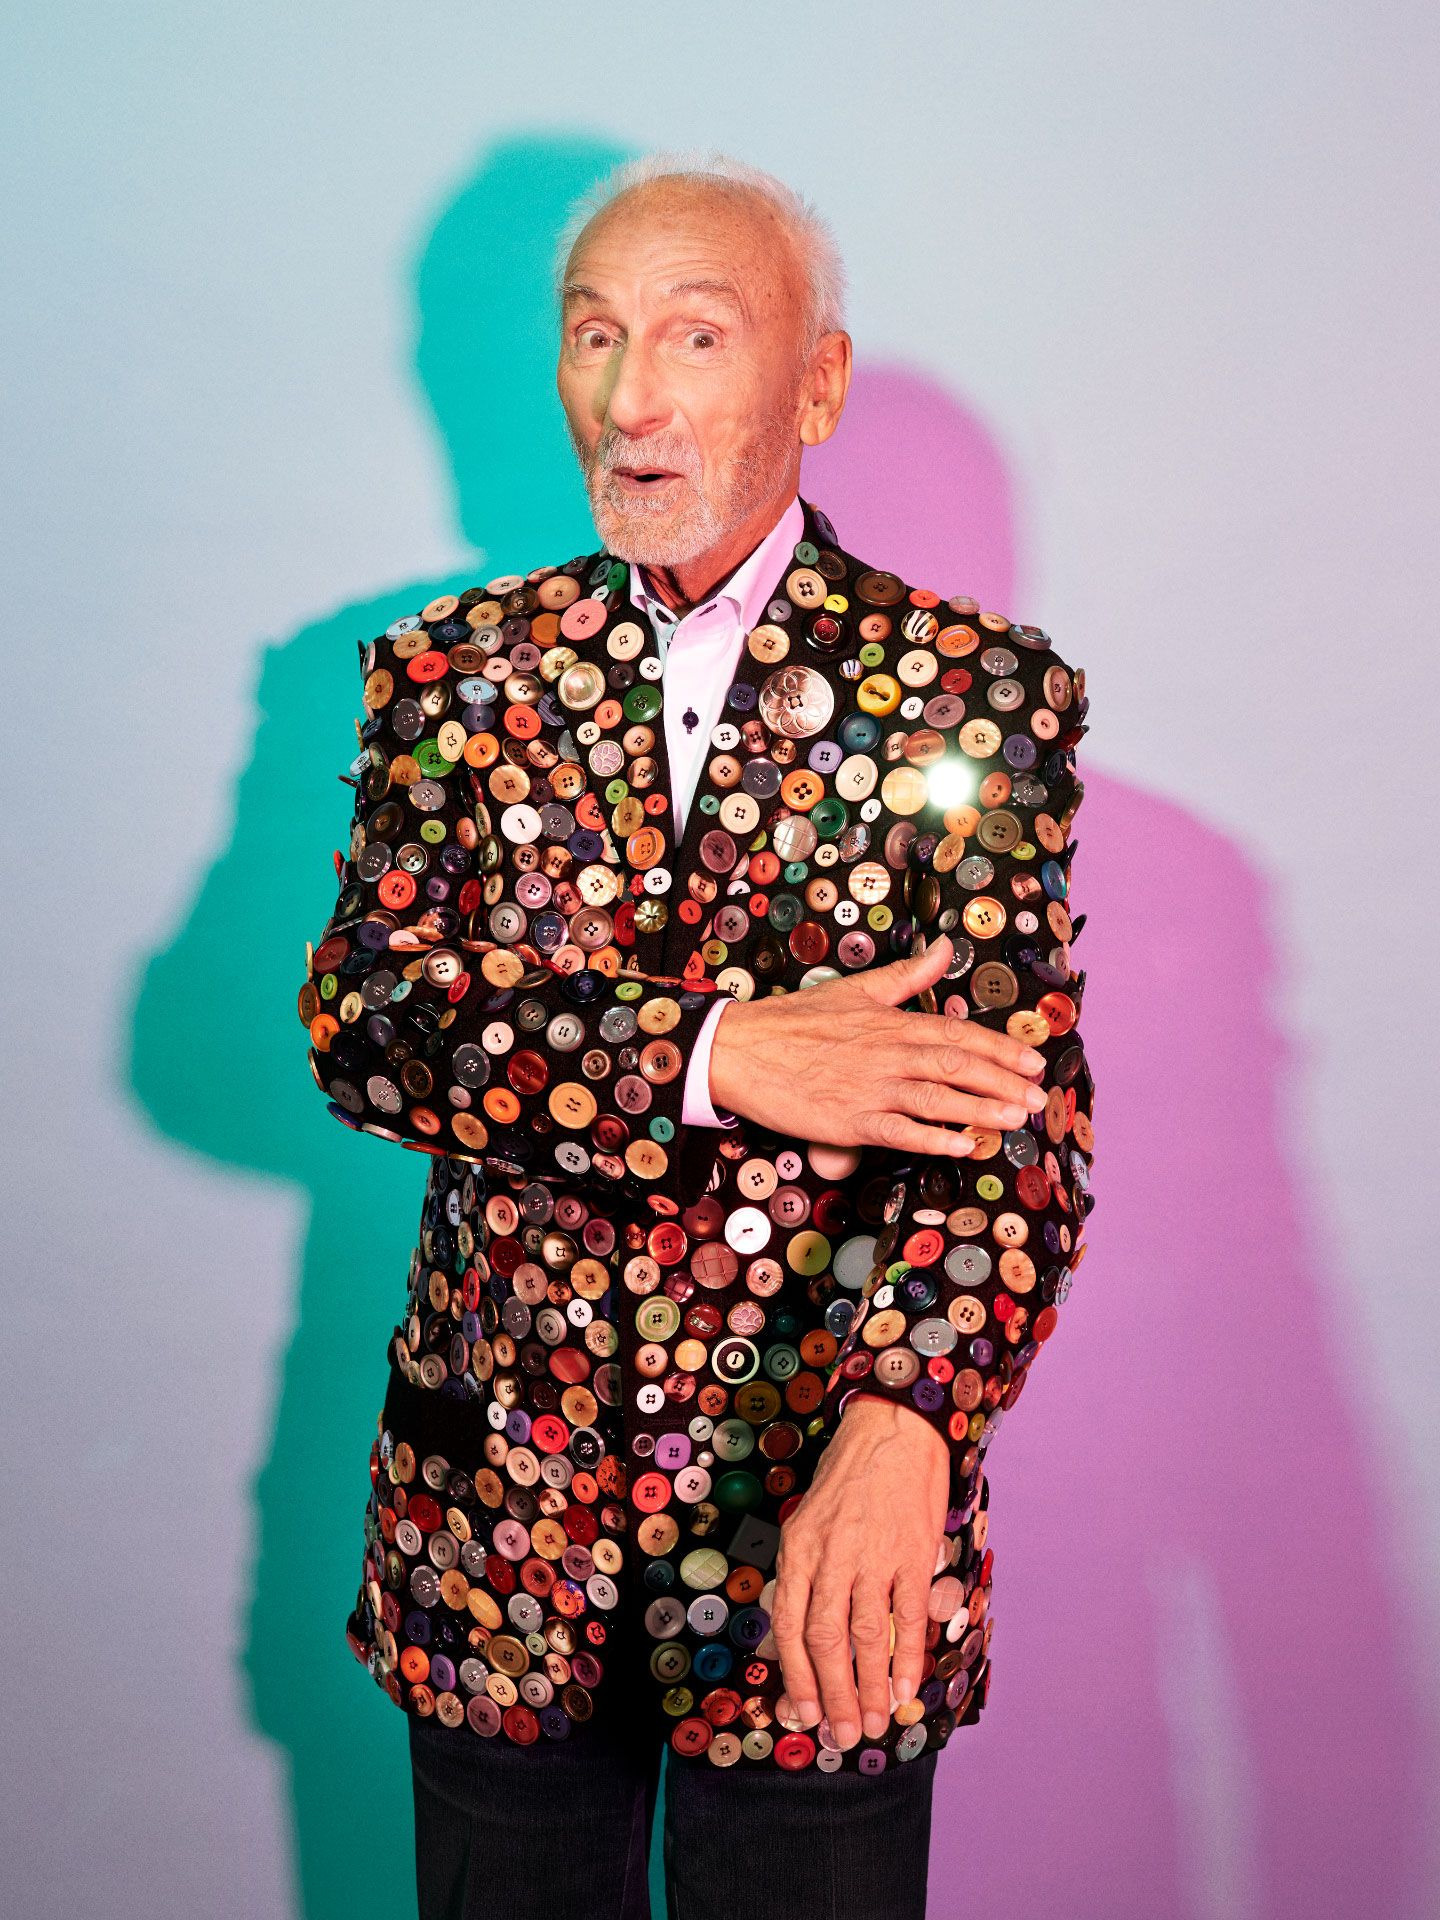 Portrait of Yvon Deschamps. He is wearing a suit covered with colored buttons, is making a funny surprised face. The light around him and background are turquoise and pink.